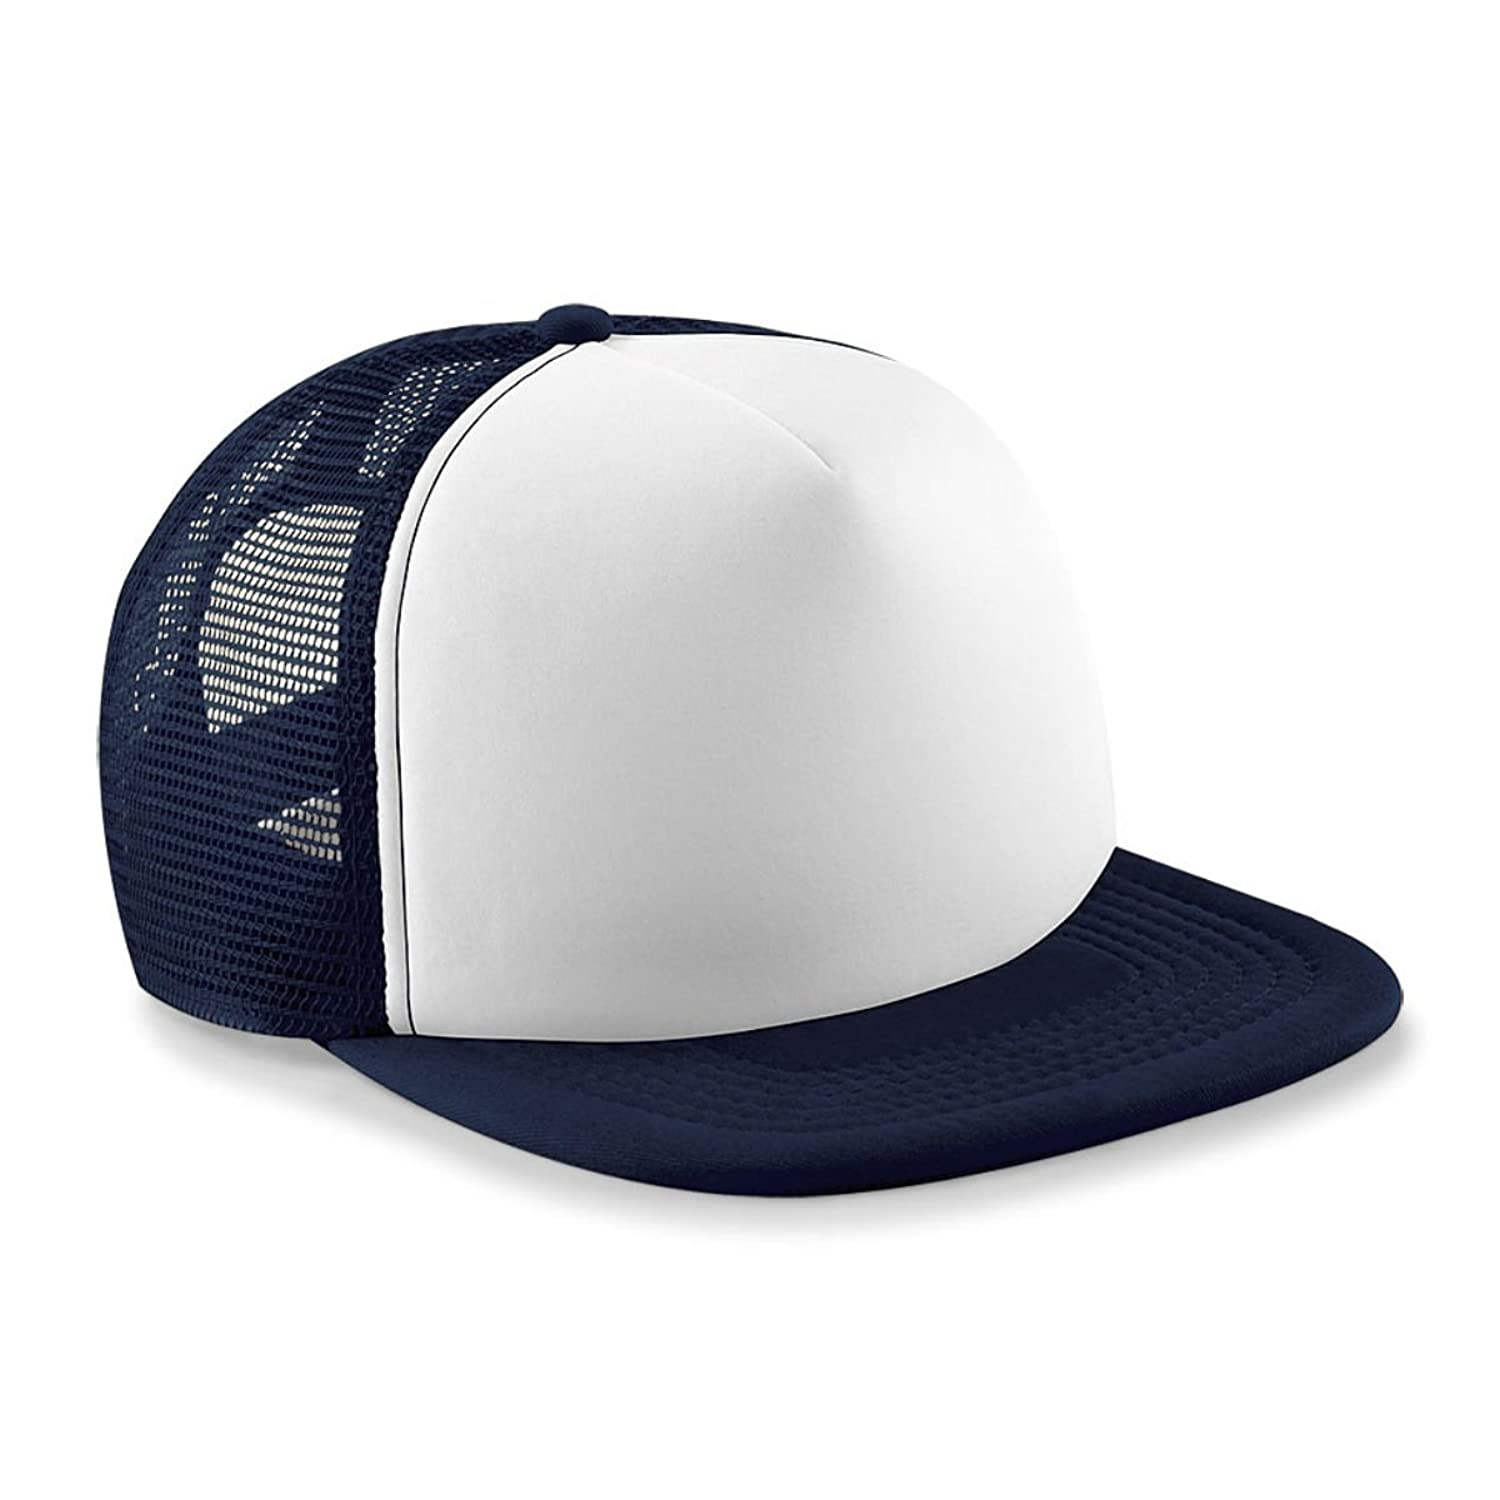 Kids Vintage Snap Back Trucker Cap Navy/White